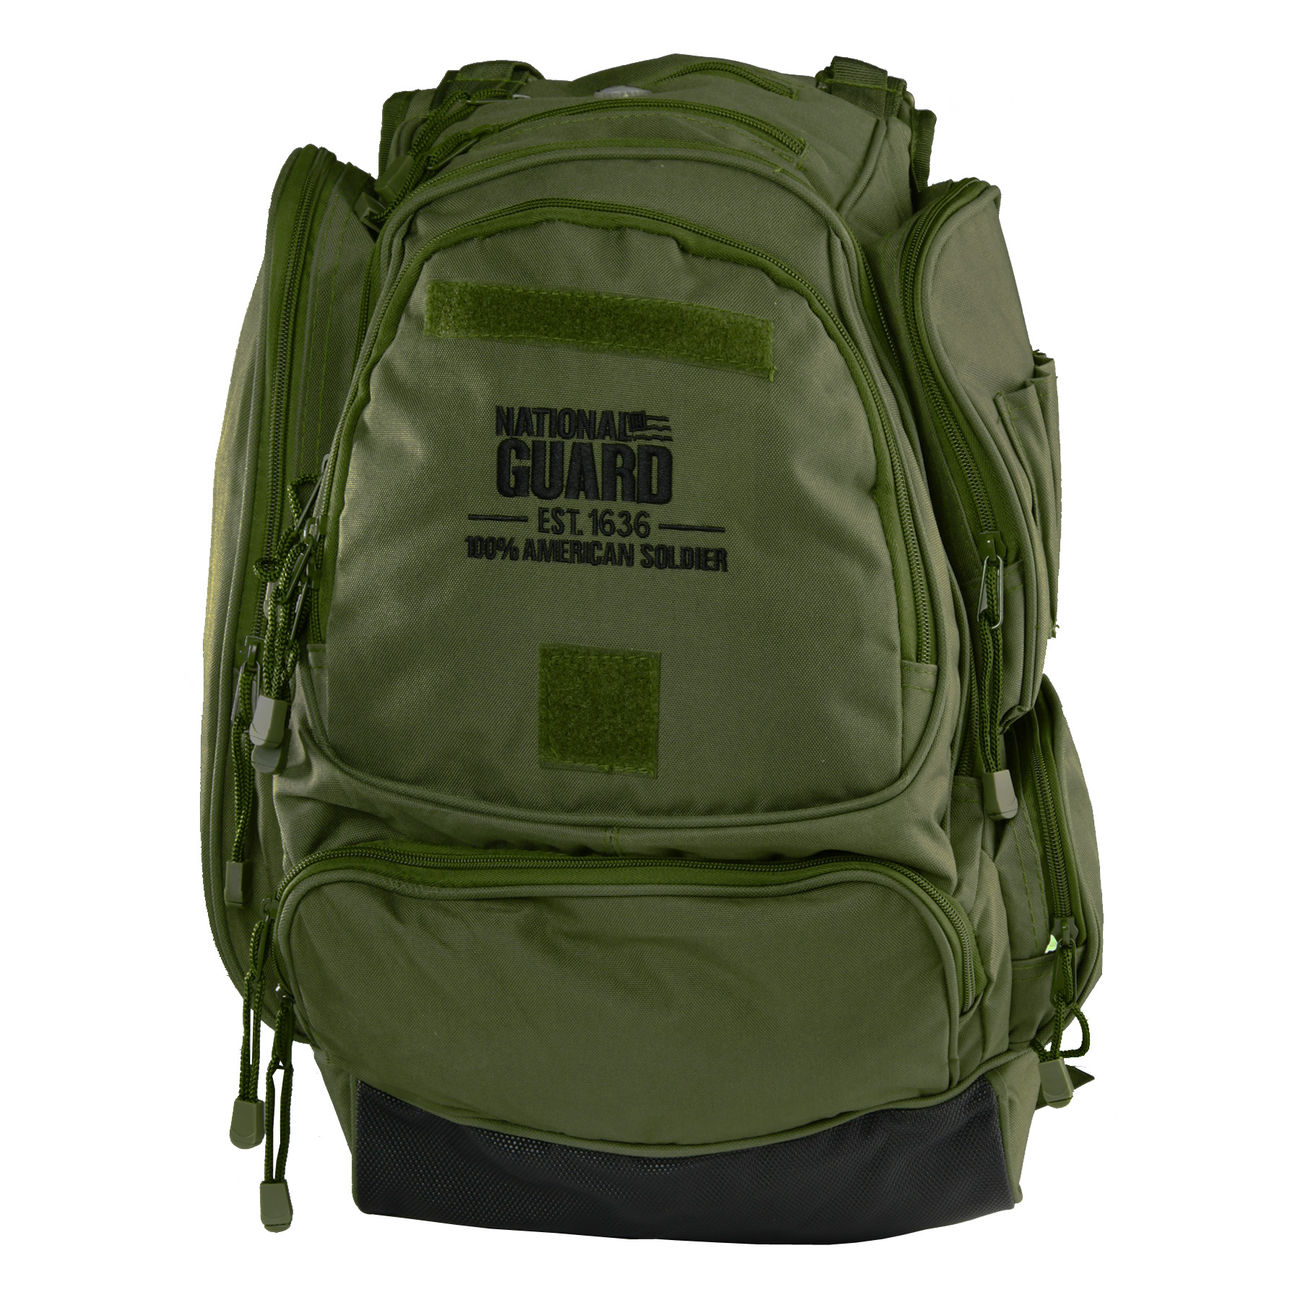 US Rucksack National Guard oliv 1